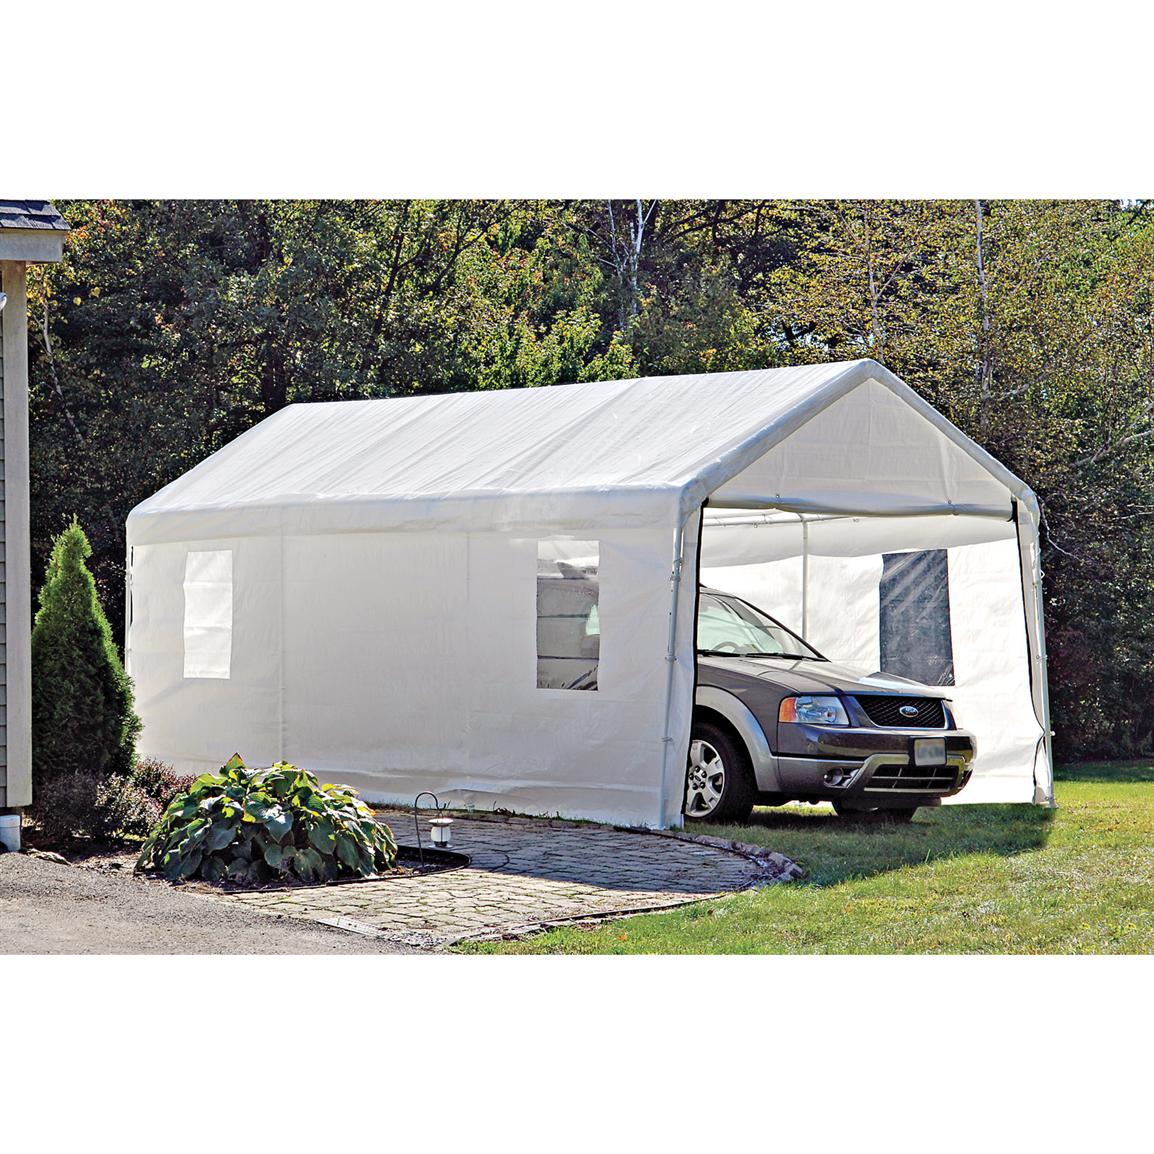 portable carport shelterlogic portable garage canopy carport, 10u0027 x 20u0027, white cover KKFIGZQ